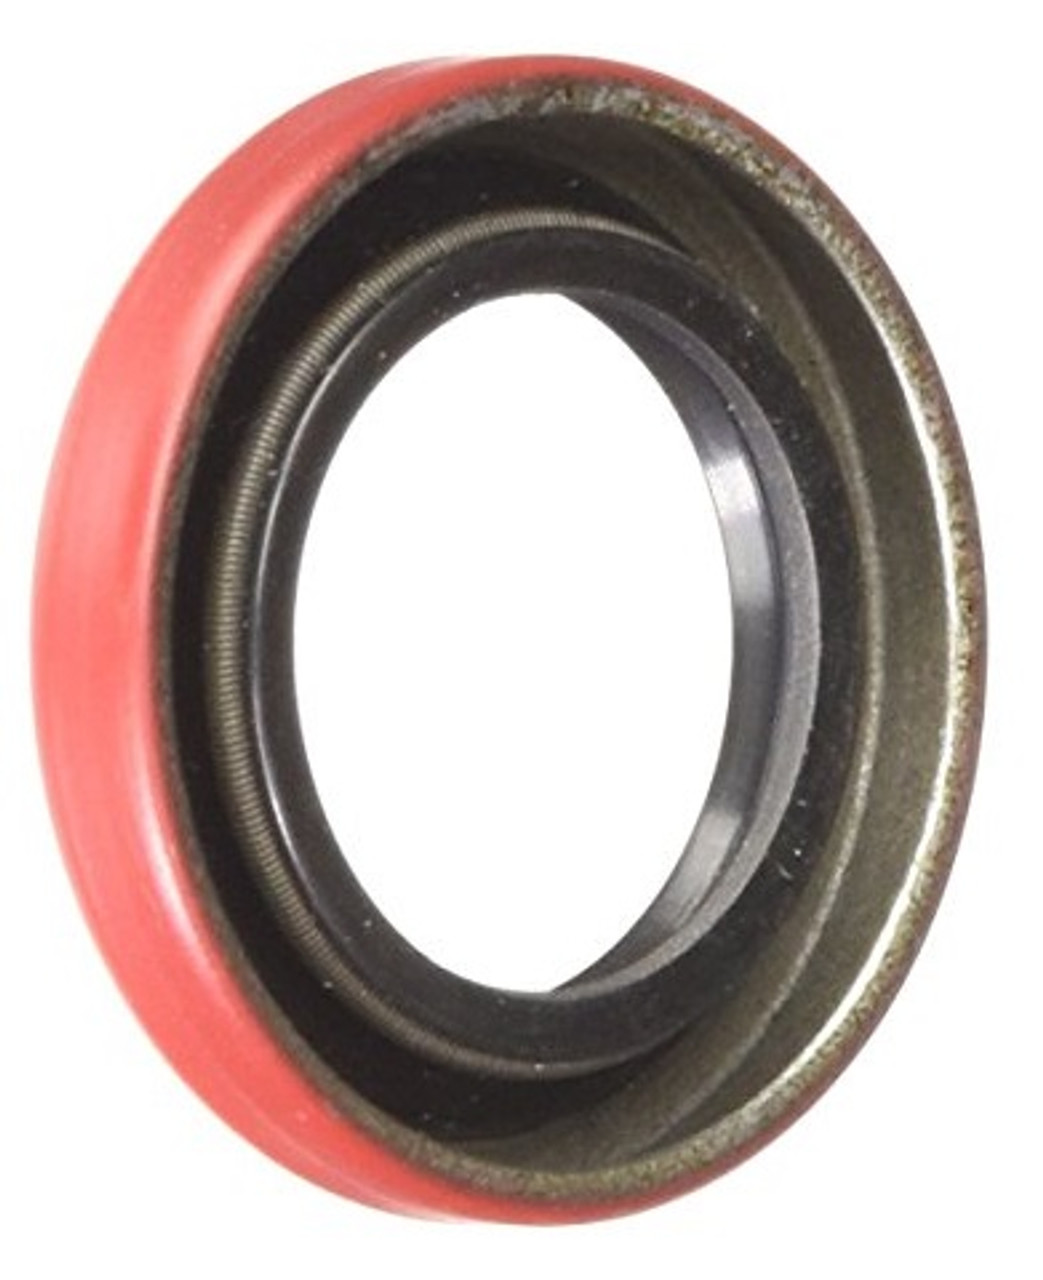 471772 National Equivalent Oil Seal by TCM 1.06 Inch Shaft 4 Pack